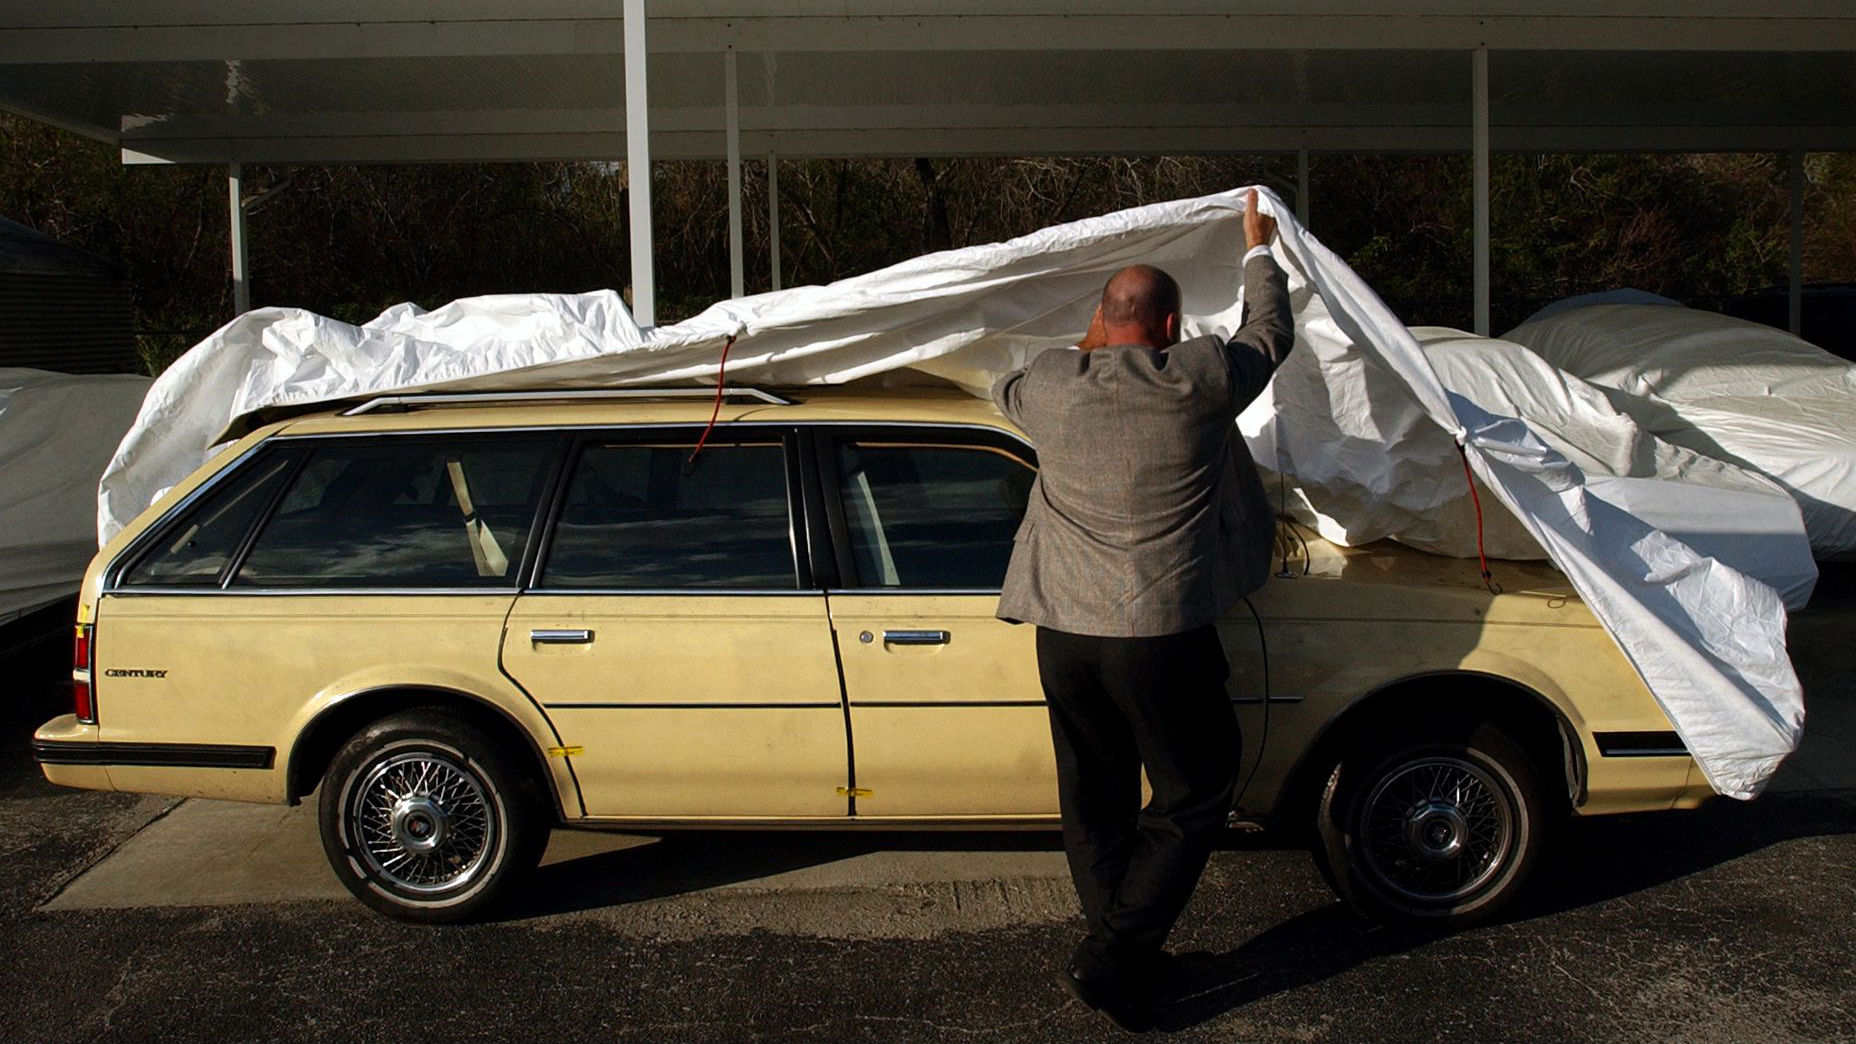 Sarasota County Sheriff Capt. Jeffrey Bell reveals the 1992 Buick Century station wagon they say was used in the abduction of Carlie Brucia at one of their fleet facilities in Osprey, Fla., Thursday, Feb. 5, 2004. The Sarasota County Sheriff's office is pleading with the public for assistance surrounding the abduction of the 11-year-old Brucia Sunday night. (AP Photo/Chip Litherland, POOL)